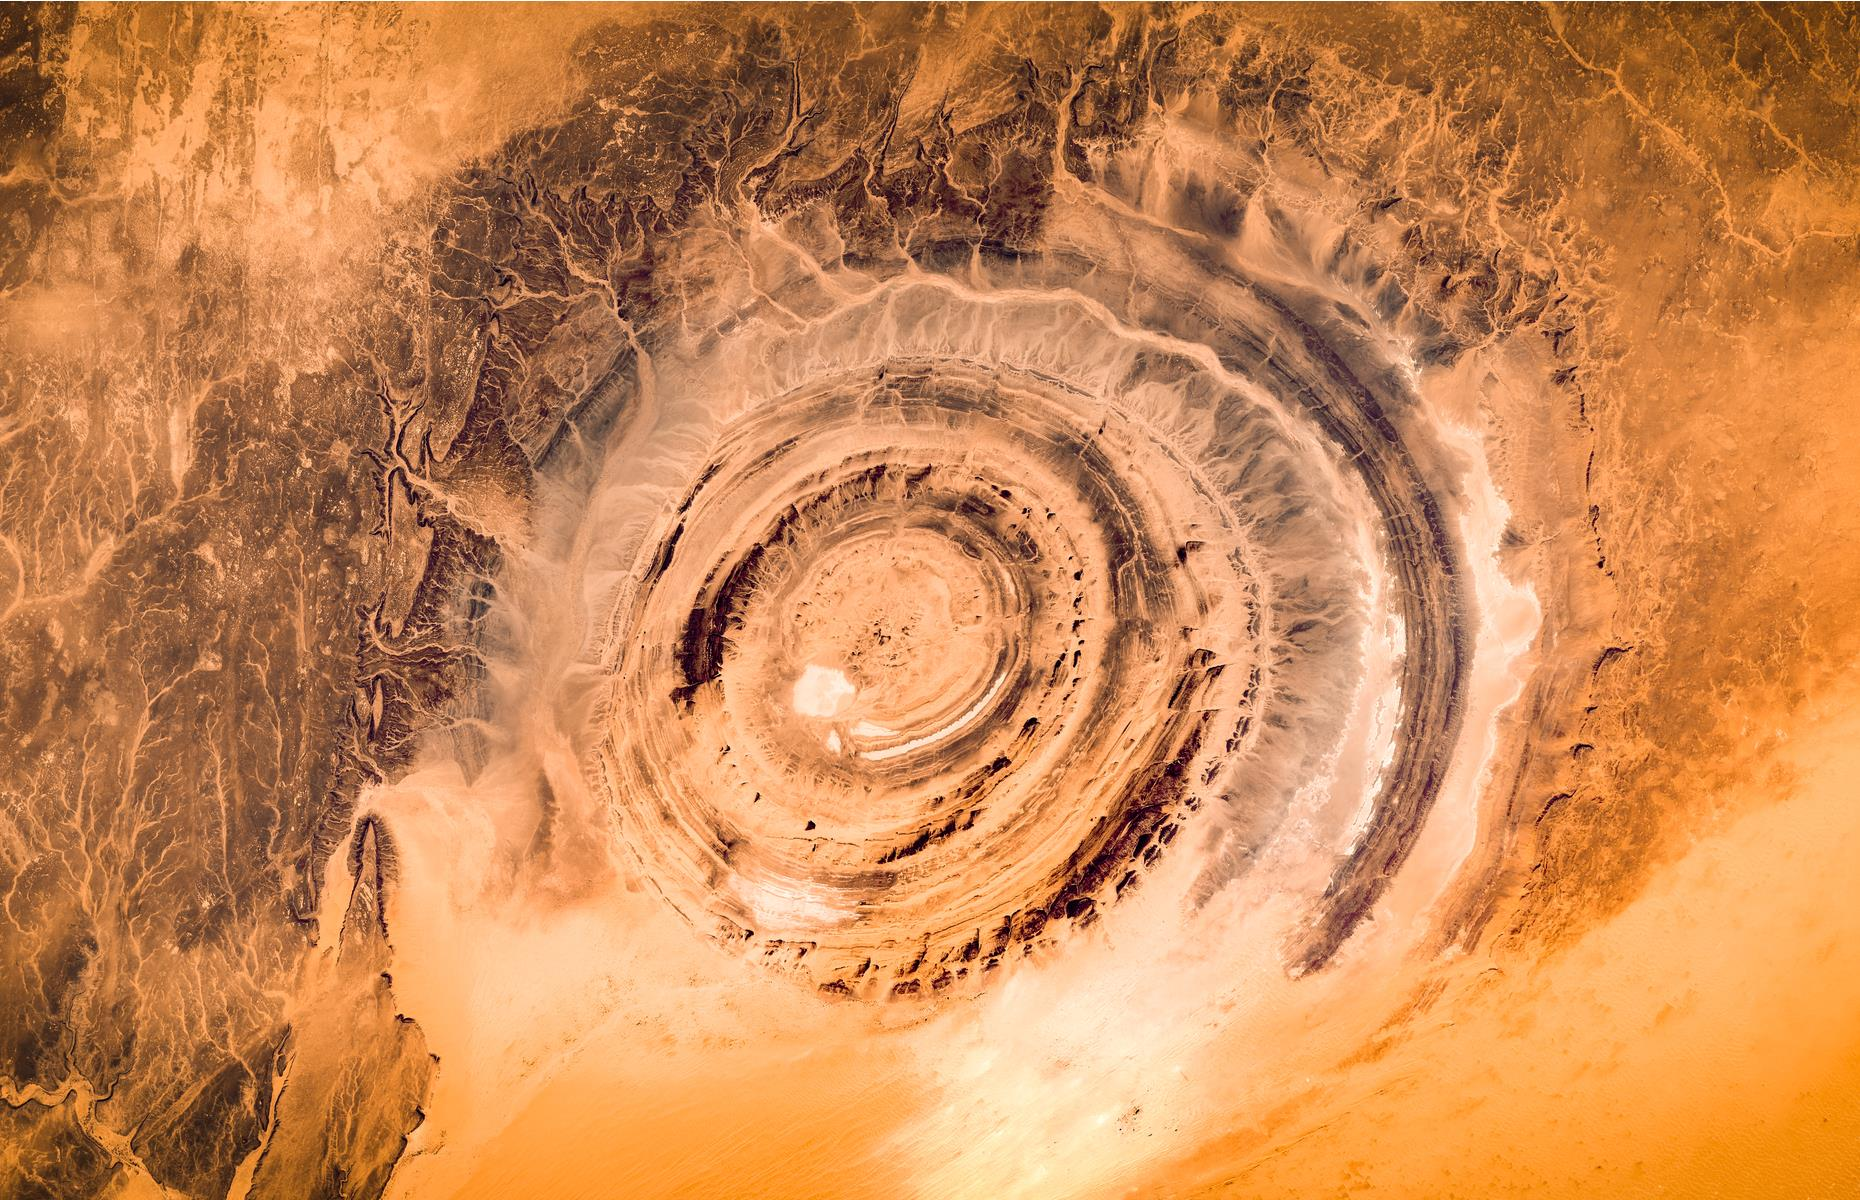 Slide 3 of 31: Astronauts have been watching the Richat Structure – also known as the Eye of Sahara – in Ouadane since humans first entered space. Viewed from the International Space Station, the 30-mile (48.2km) wide swirl resembles a bull's eye or snail's shell. The geological quirk was believed to be a crater caused by a meteorite but it's now thought it was once a dome that has eroded over time.